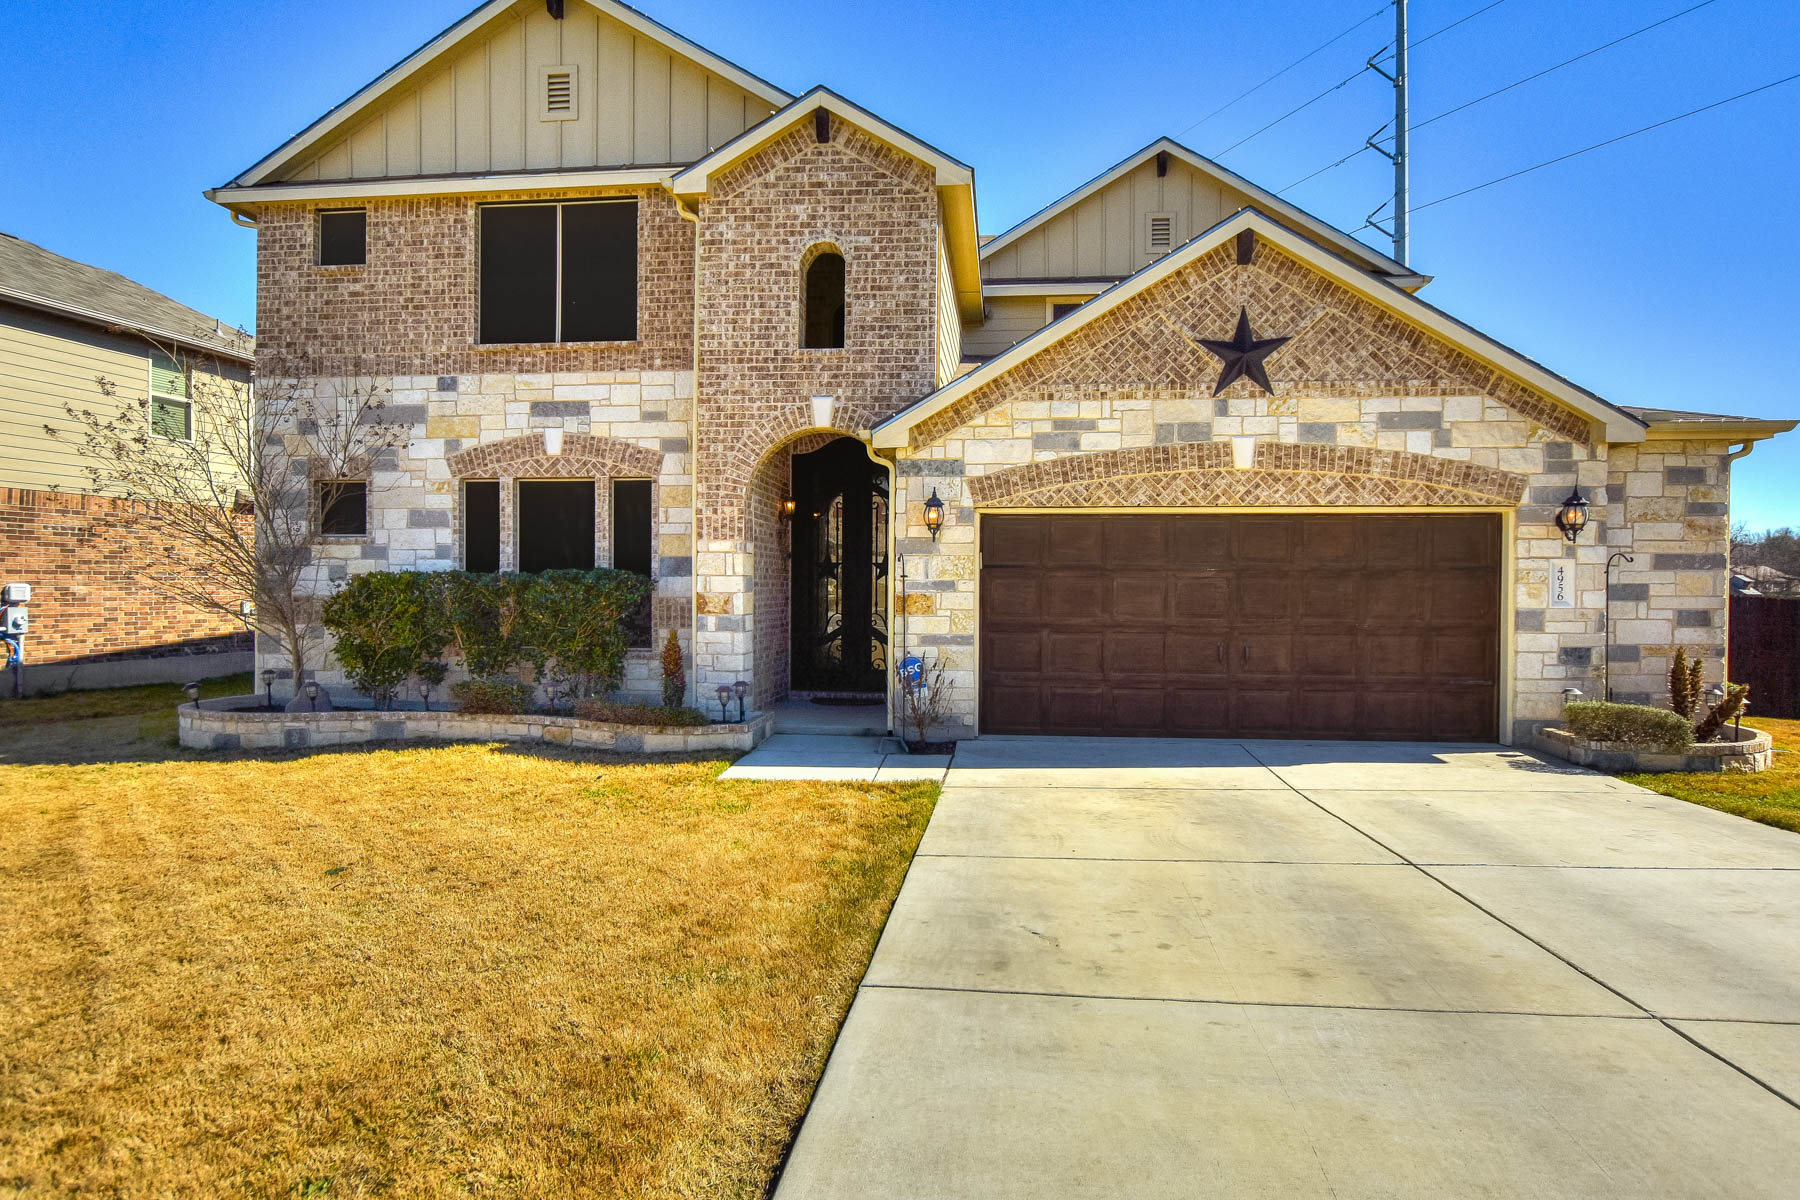 Vivienda unifamiliar por un Venta en Beatiful Home in Schertz 4956 Eagle Valley St Cibolo, Texas 78108 Estados Unidos